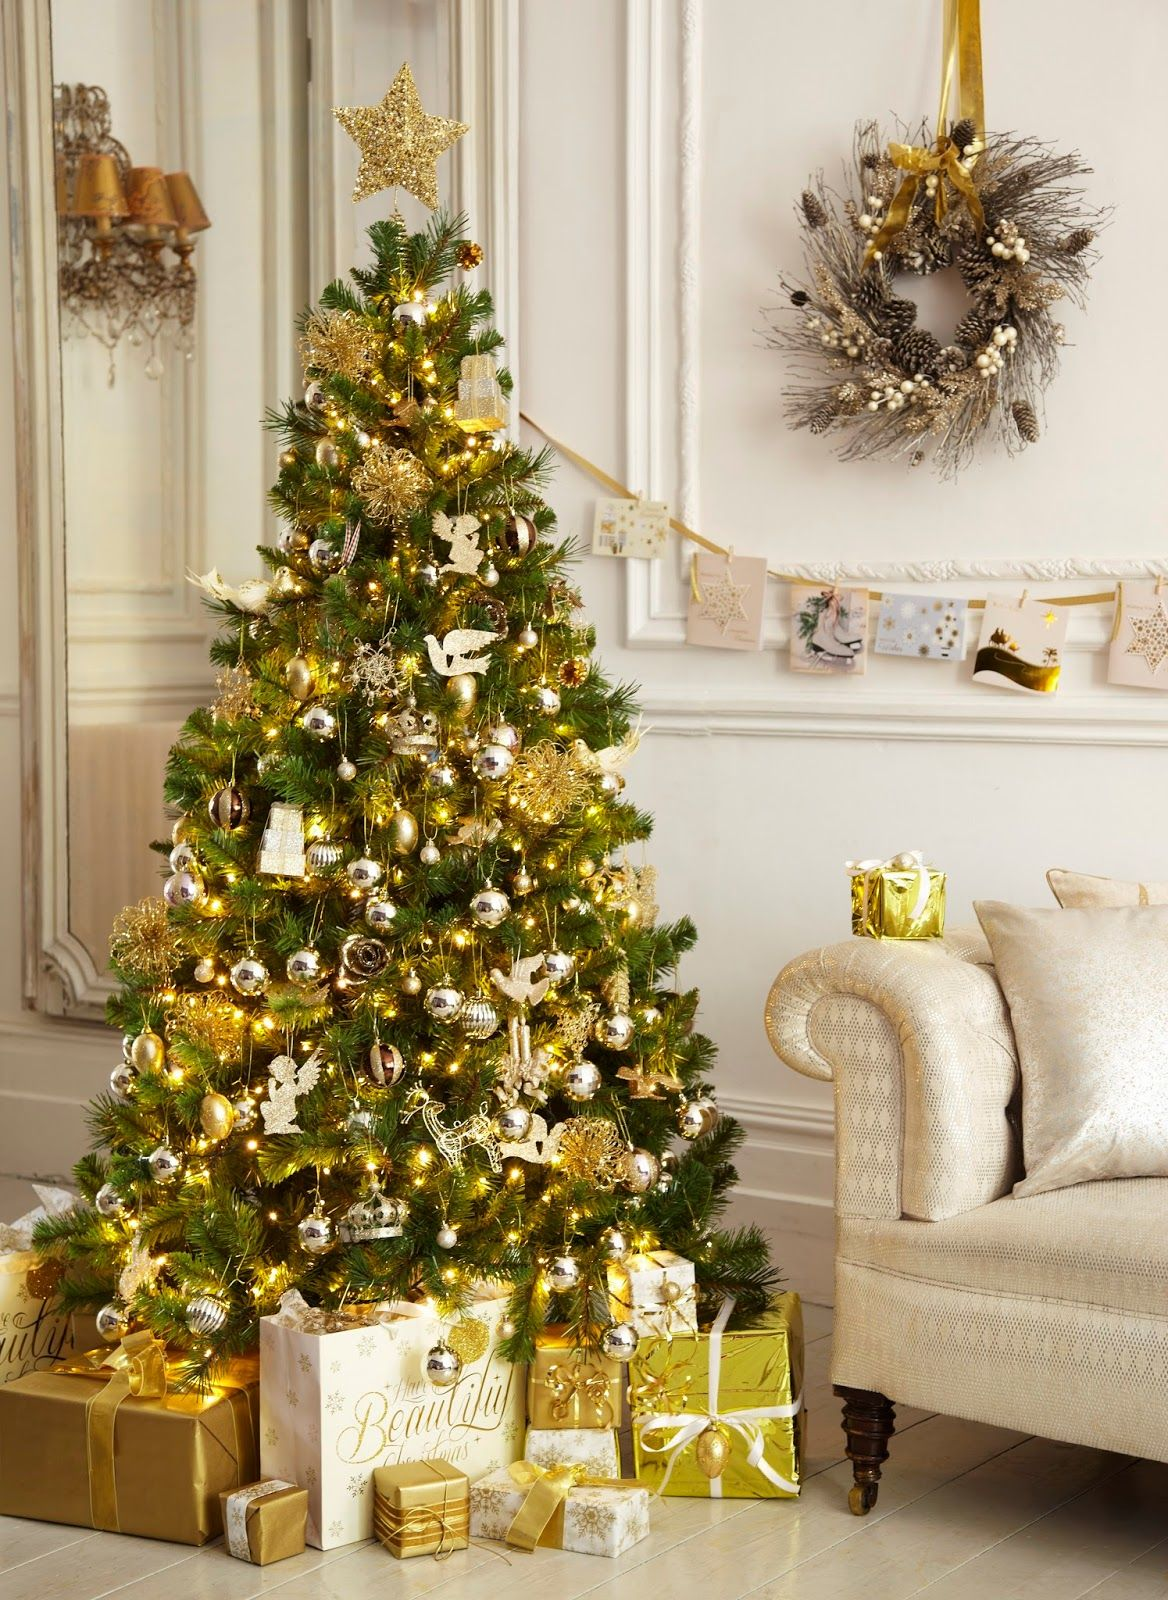 40 Gold Christmas Tree Decorations Ideas For Coming Holiday Session Gold Christmas Decorations Gold Christmas Tree White Christmas Tree Decorations